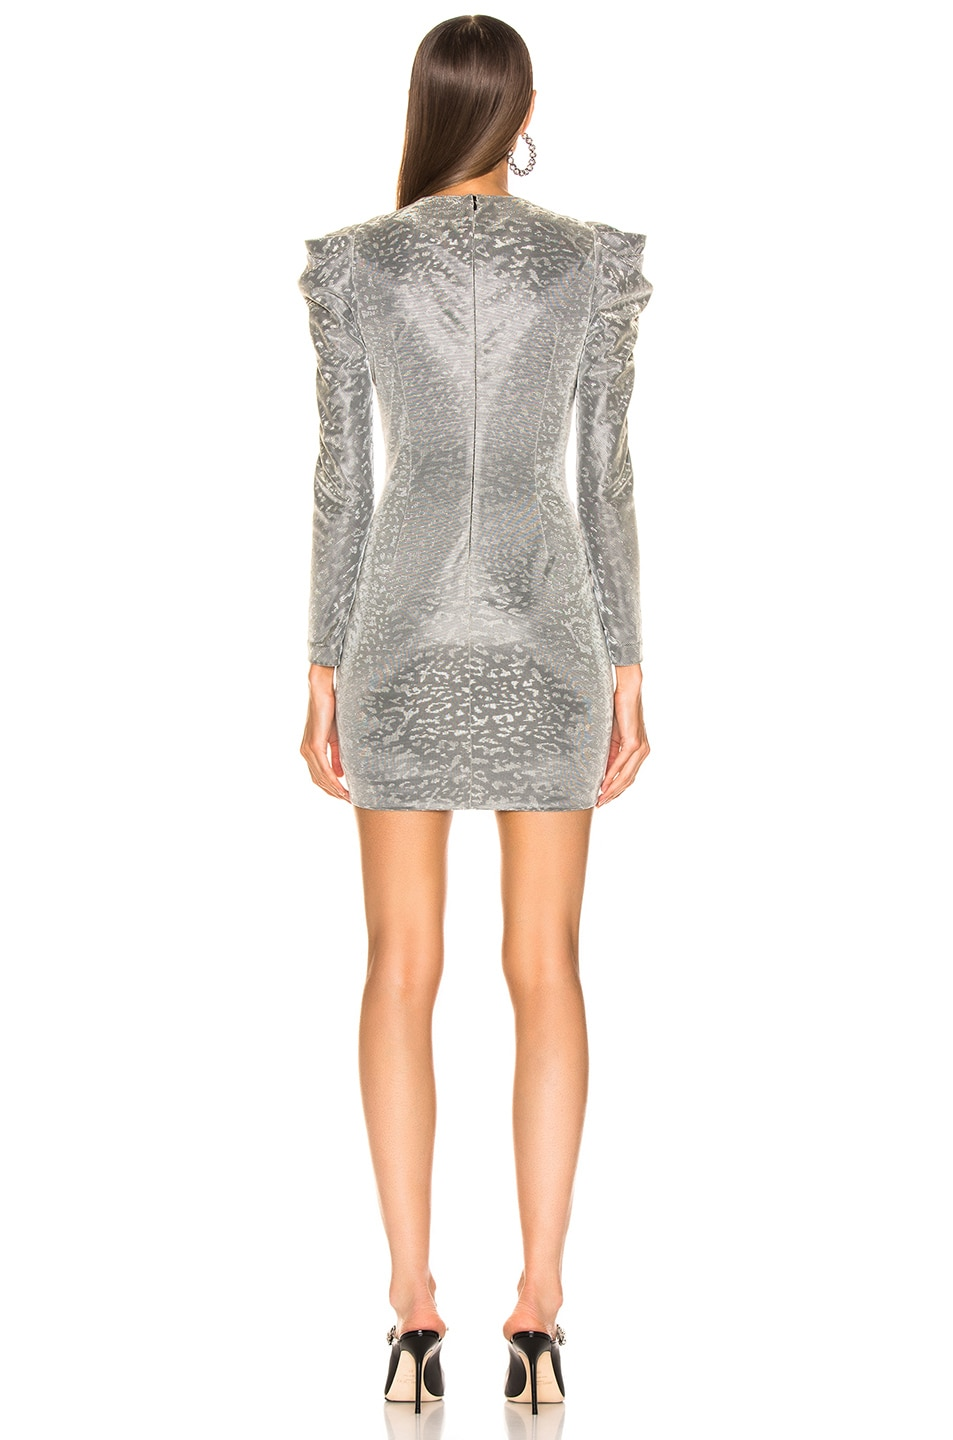 Image 3 of JONATHAN SIMKHAI for FWRD Long Sleeve Metallic Leopard Mini Dress in Silver